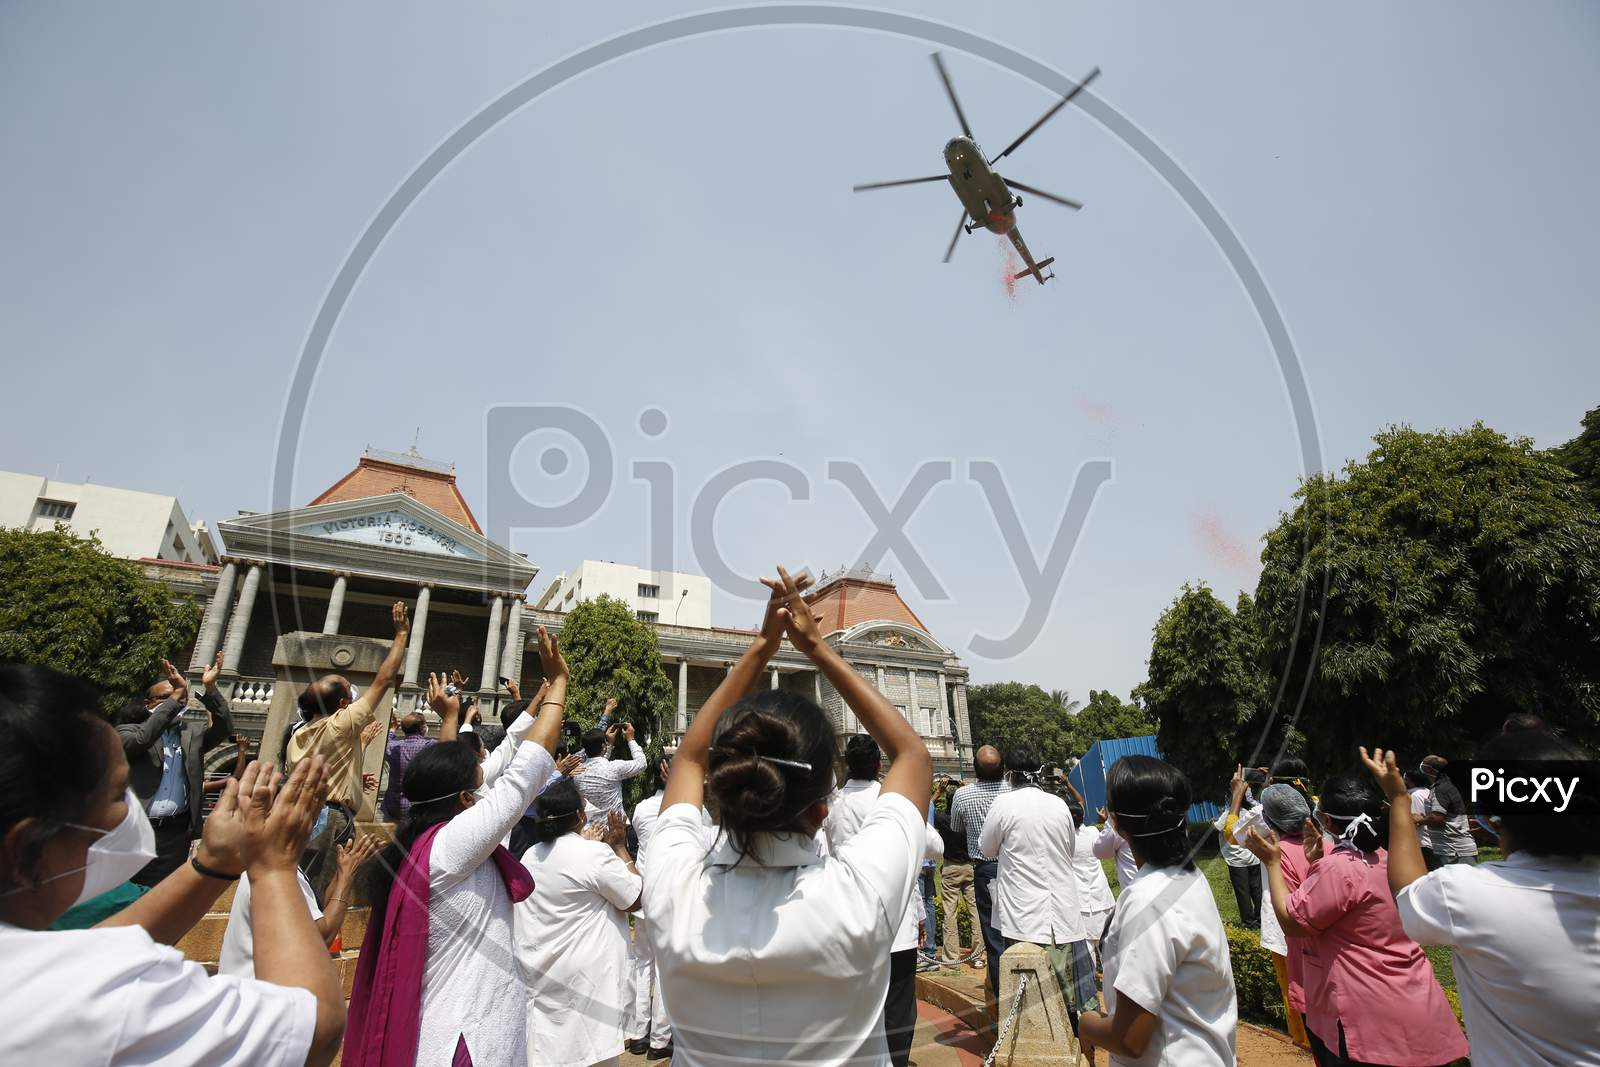 Nurses And Hospital Staff Of Victoria Hospital Cheer As An Indian Air Force (Iaf) Helicopter Showers Flowers On Them During The Nationwide Lockdown To Stop The Spread Of Coronavirus (Covid-19) In Bangalore, India, May 03, 2020.